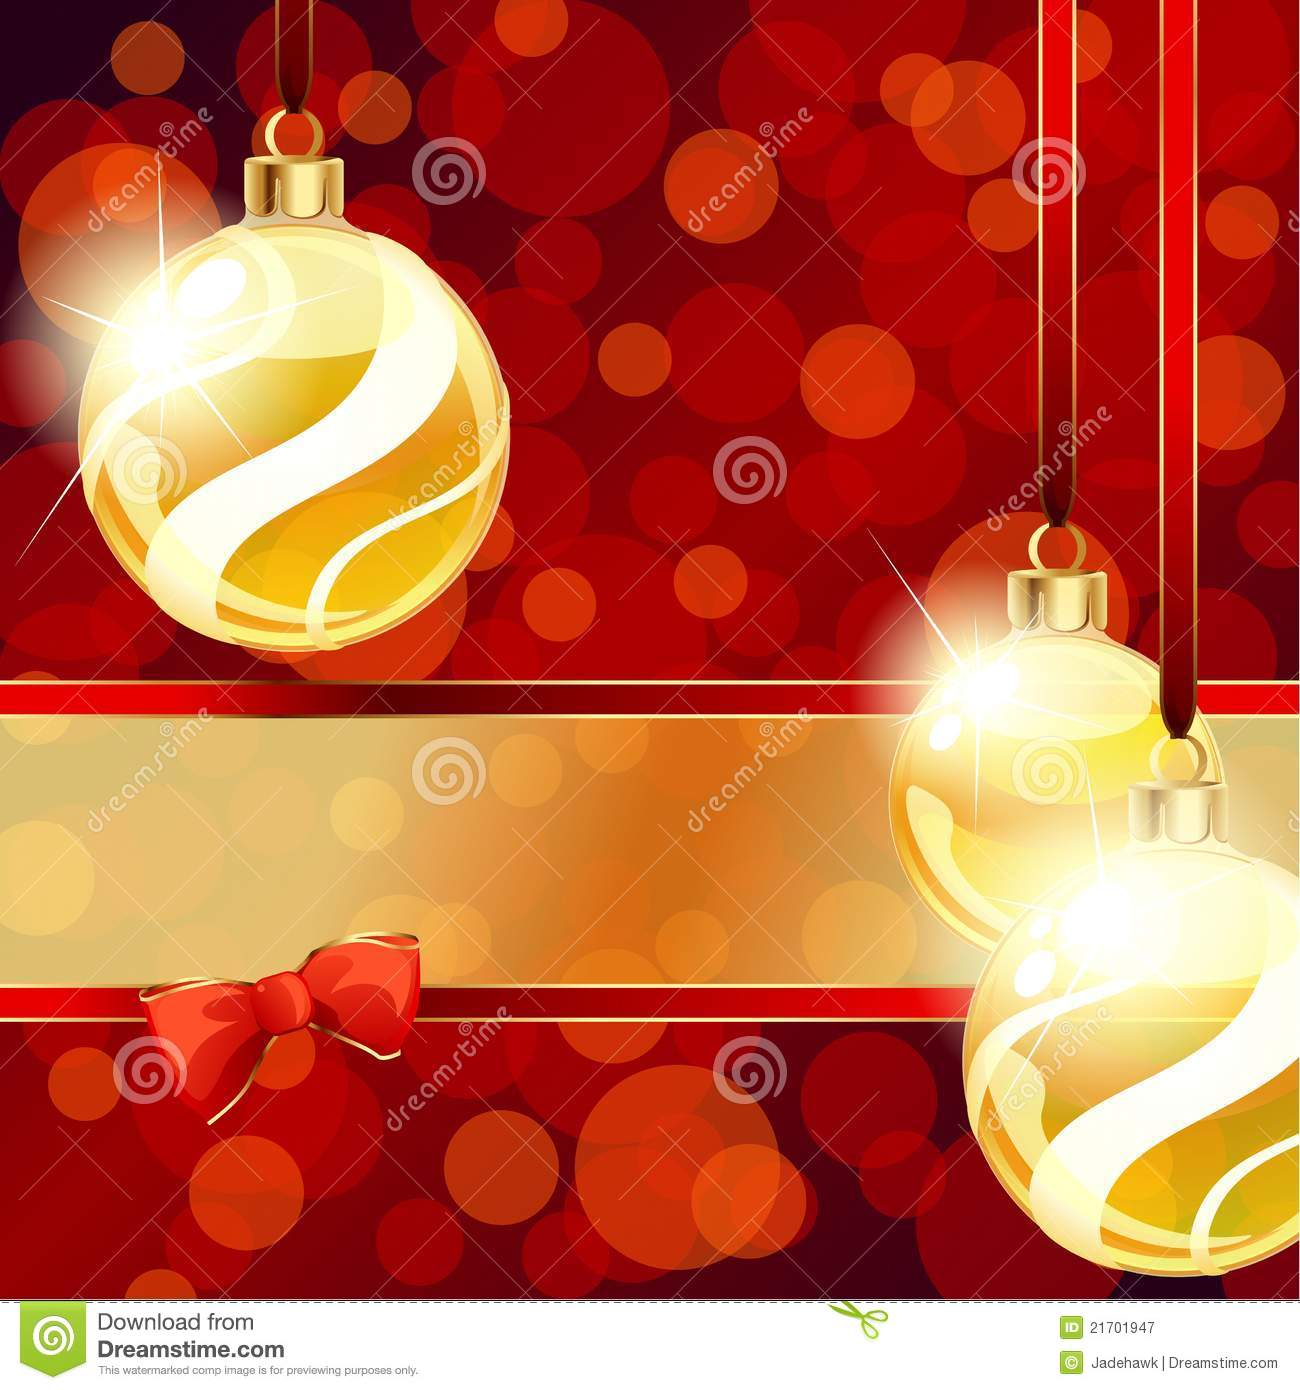 Red and gold christmas ornaments - Banner Christmas Gold Ornaments Red